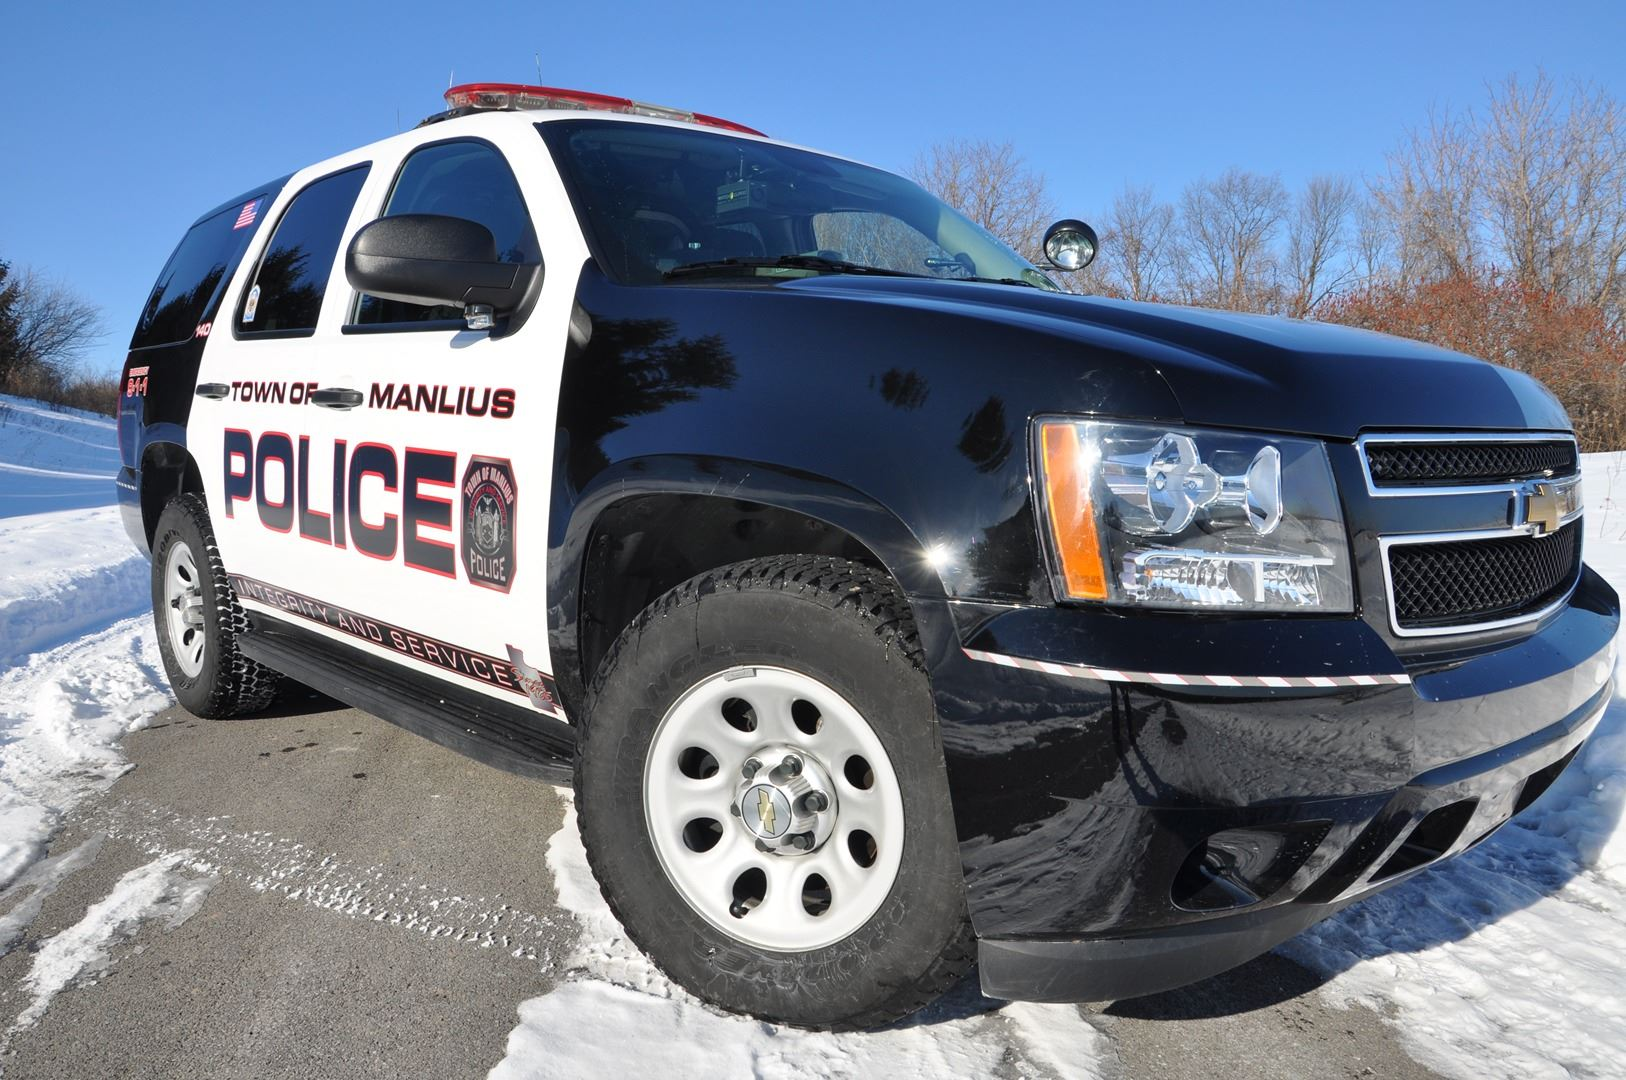 Front view of a police vehicle